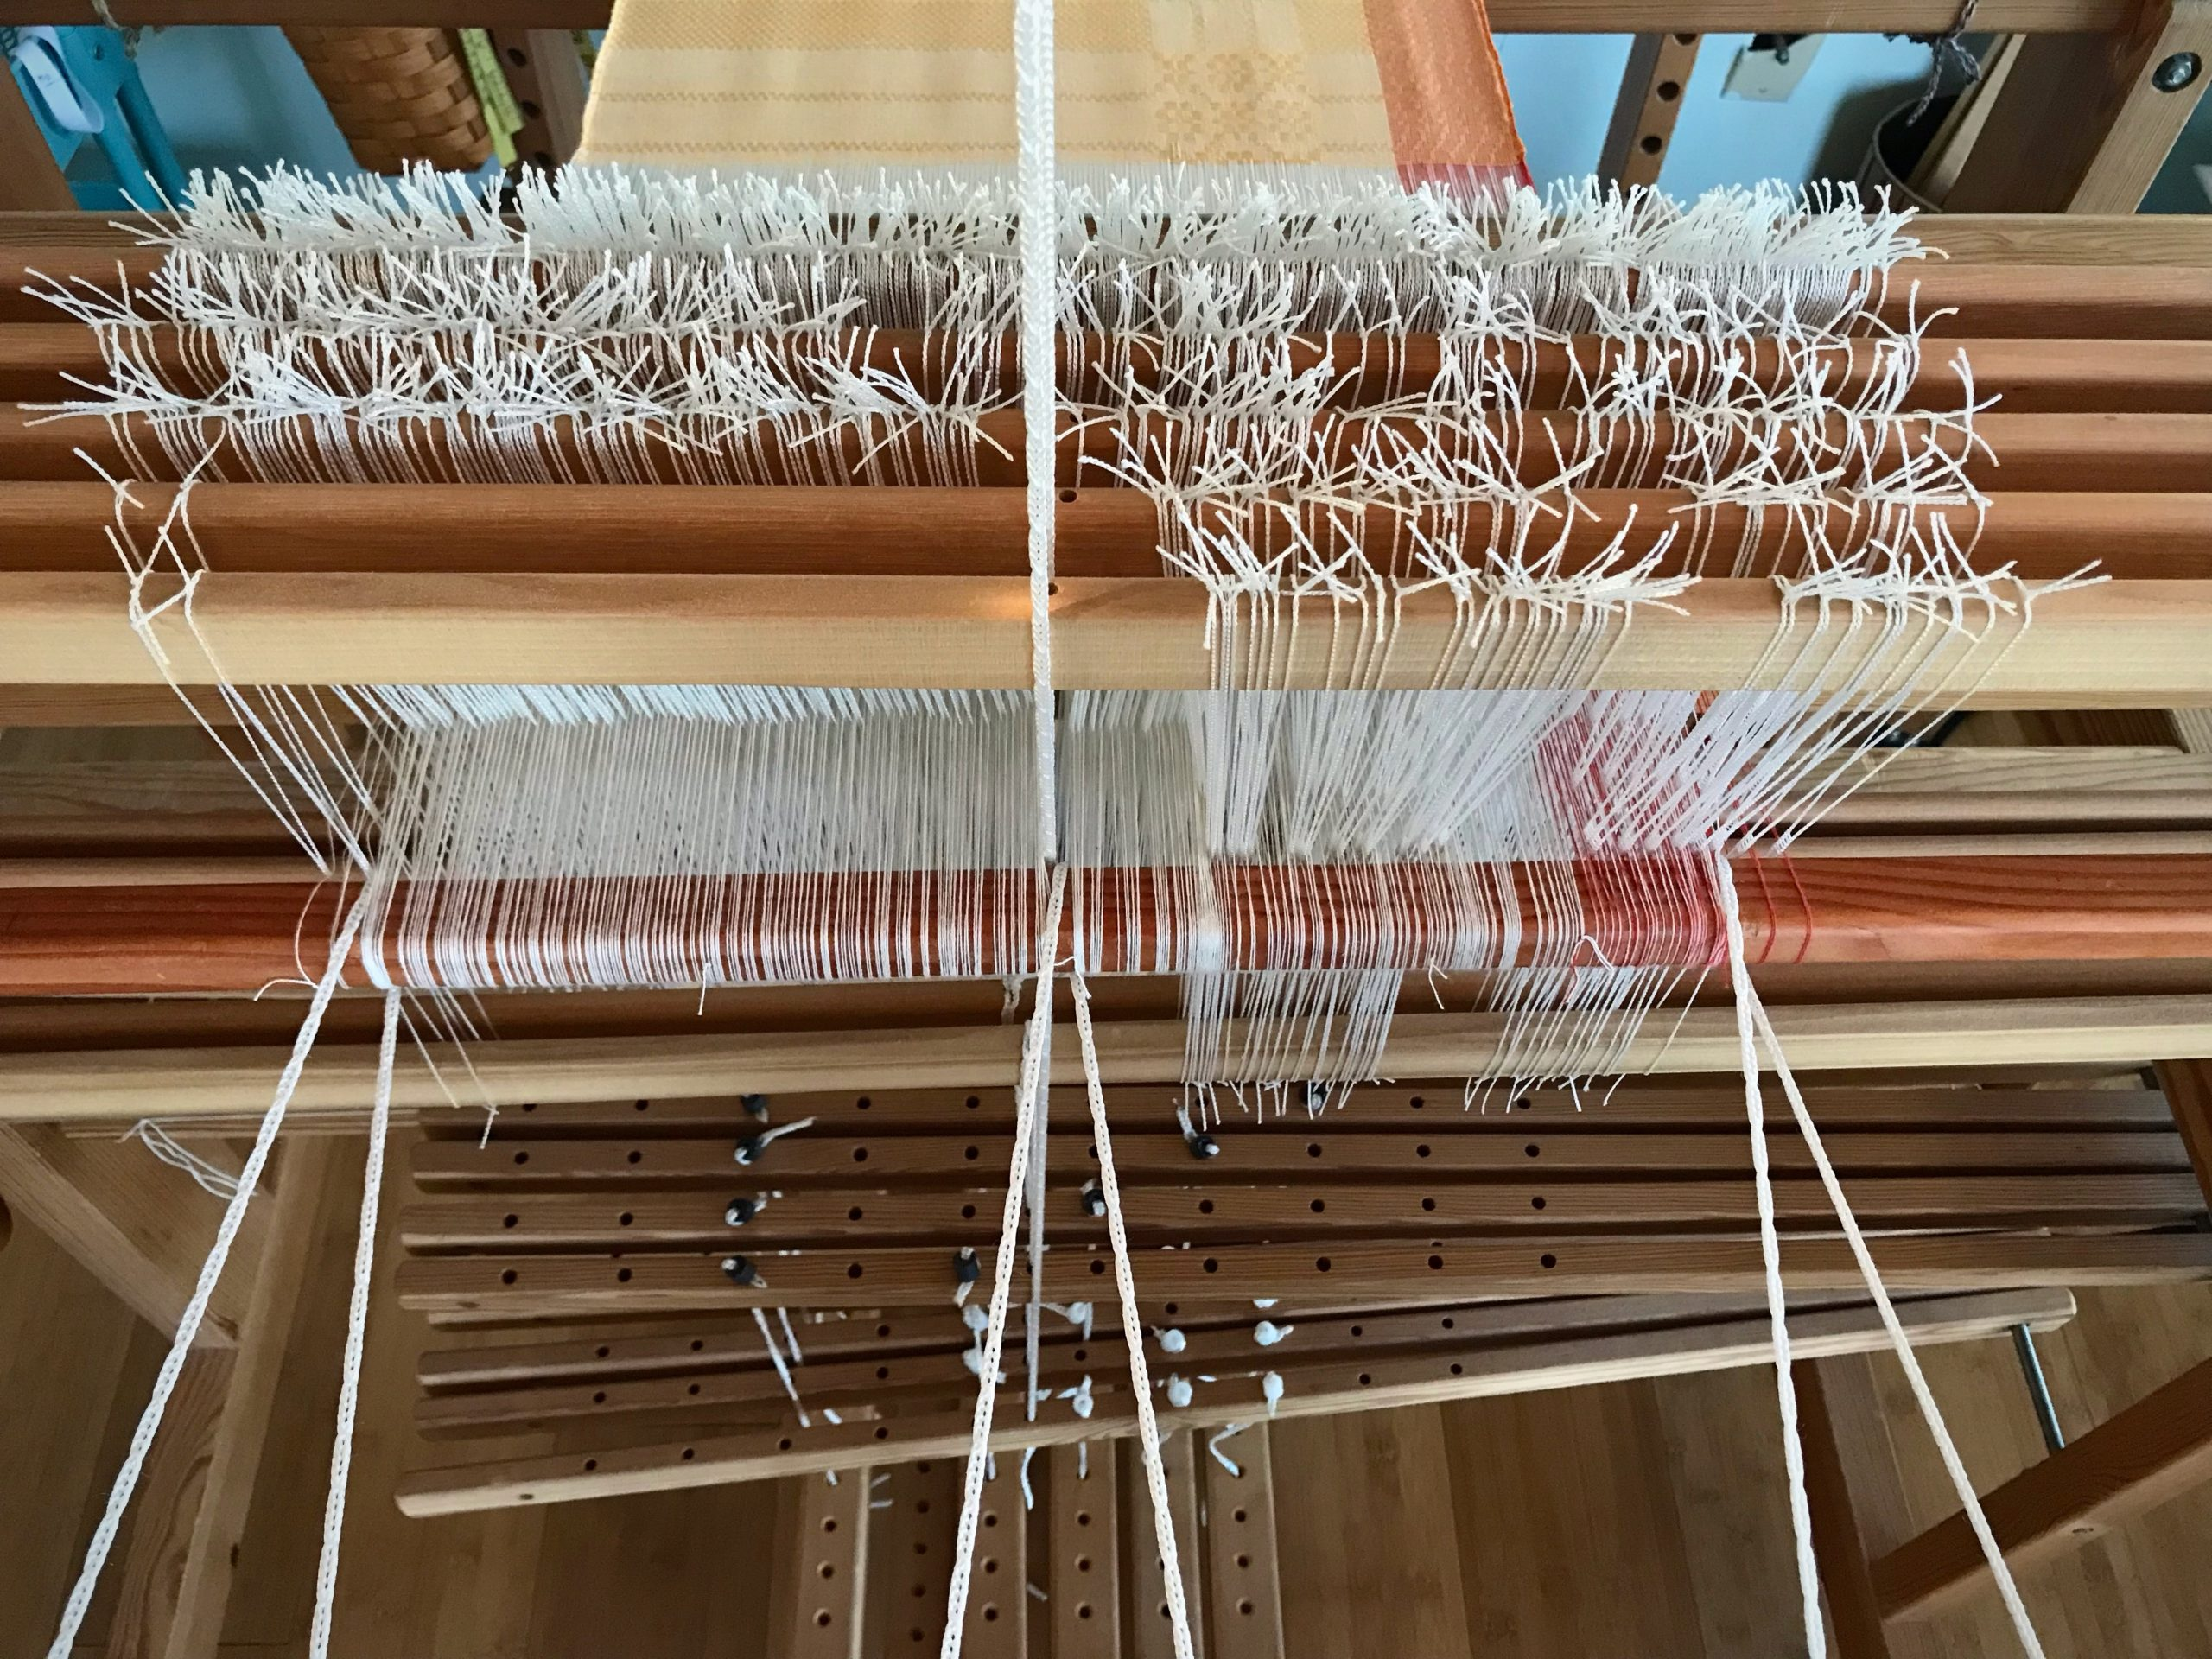 Weave until there's nothing left to weave!